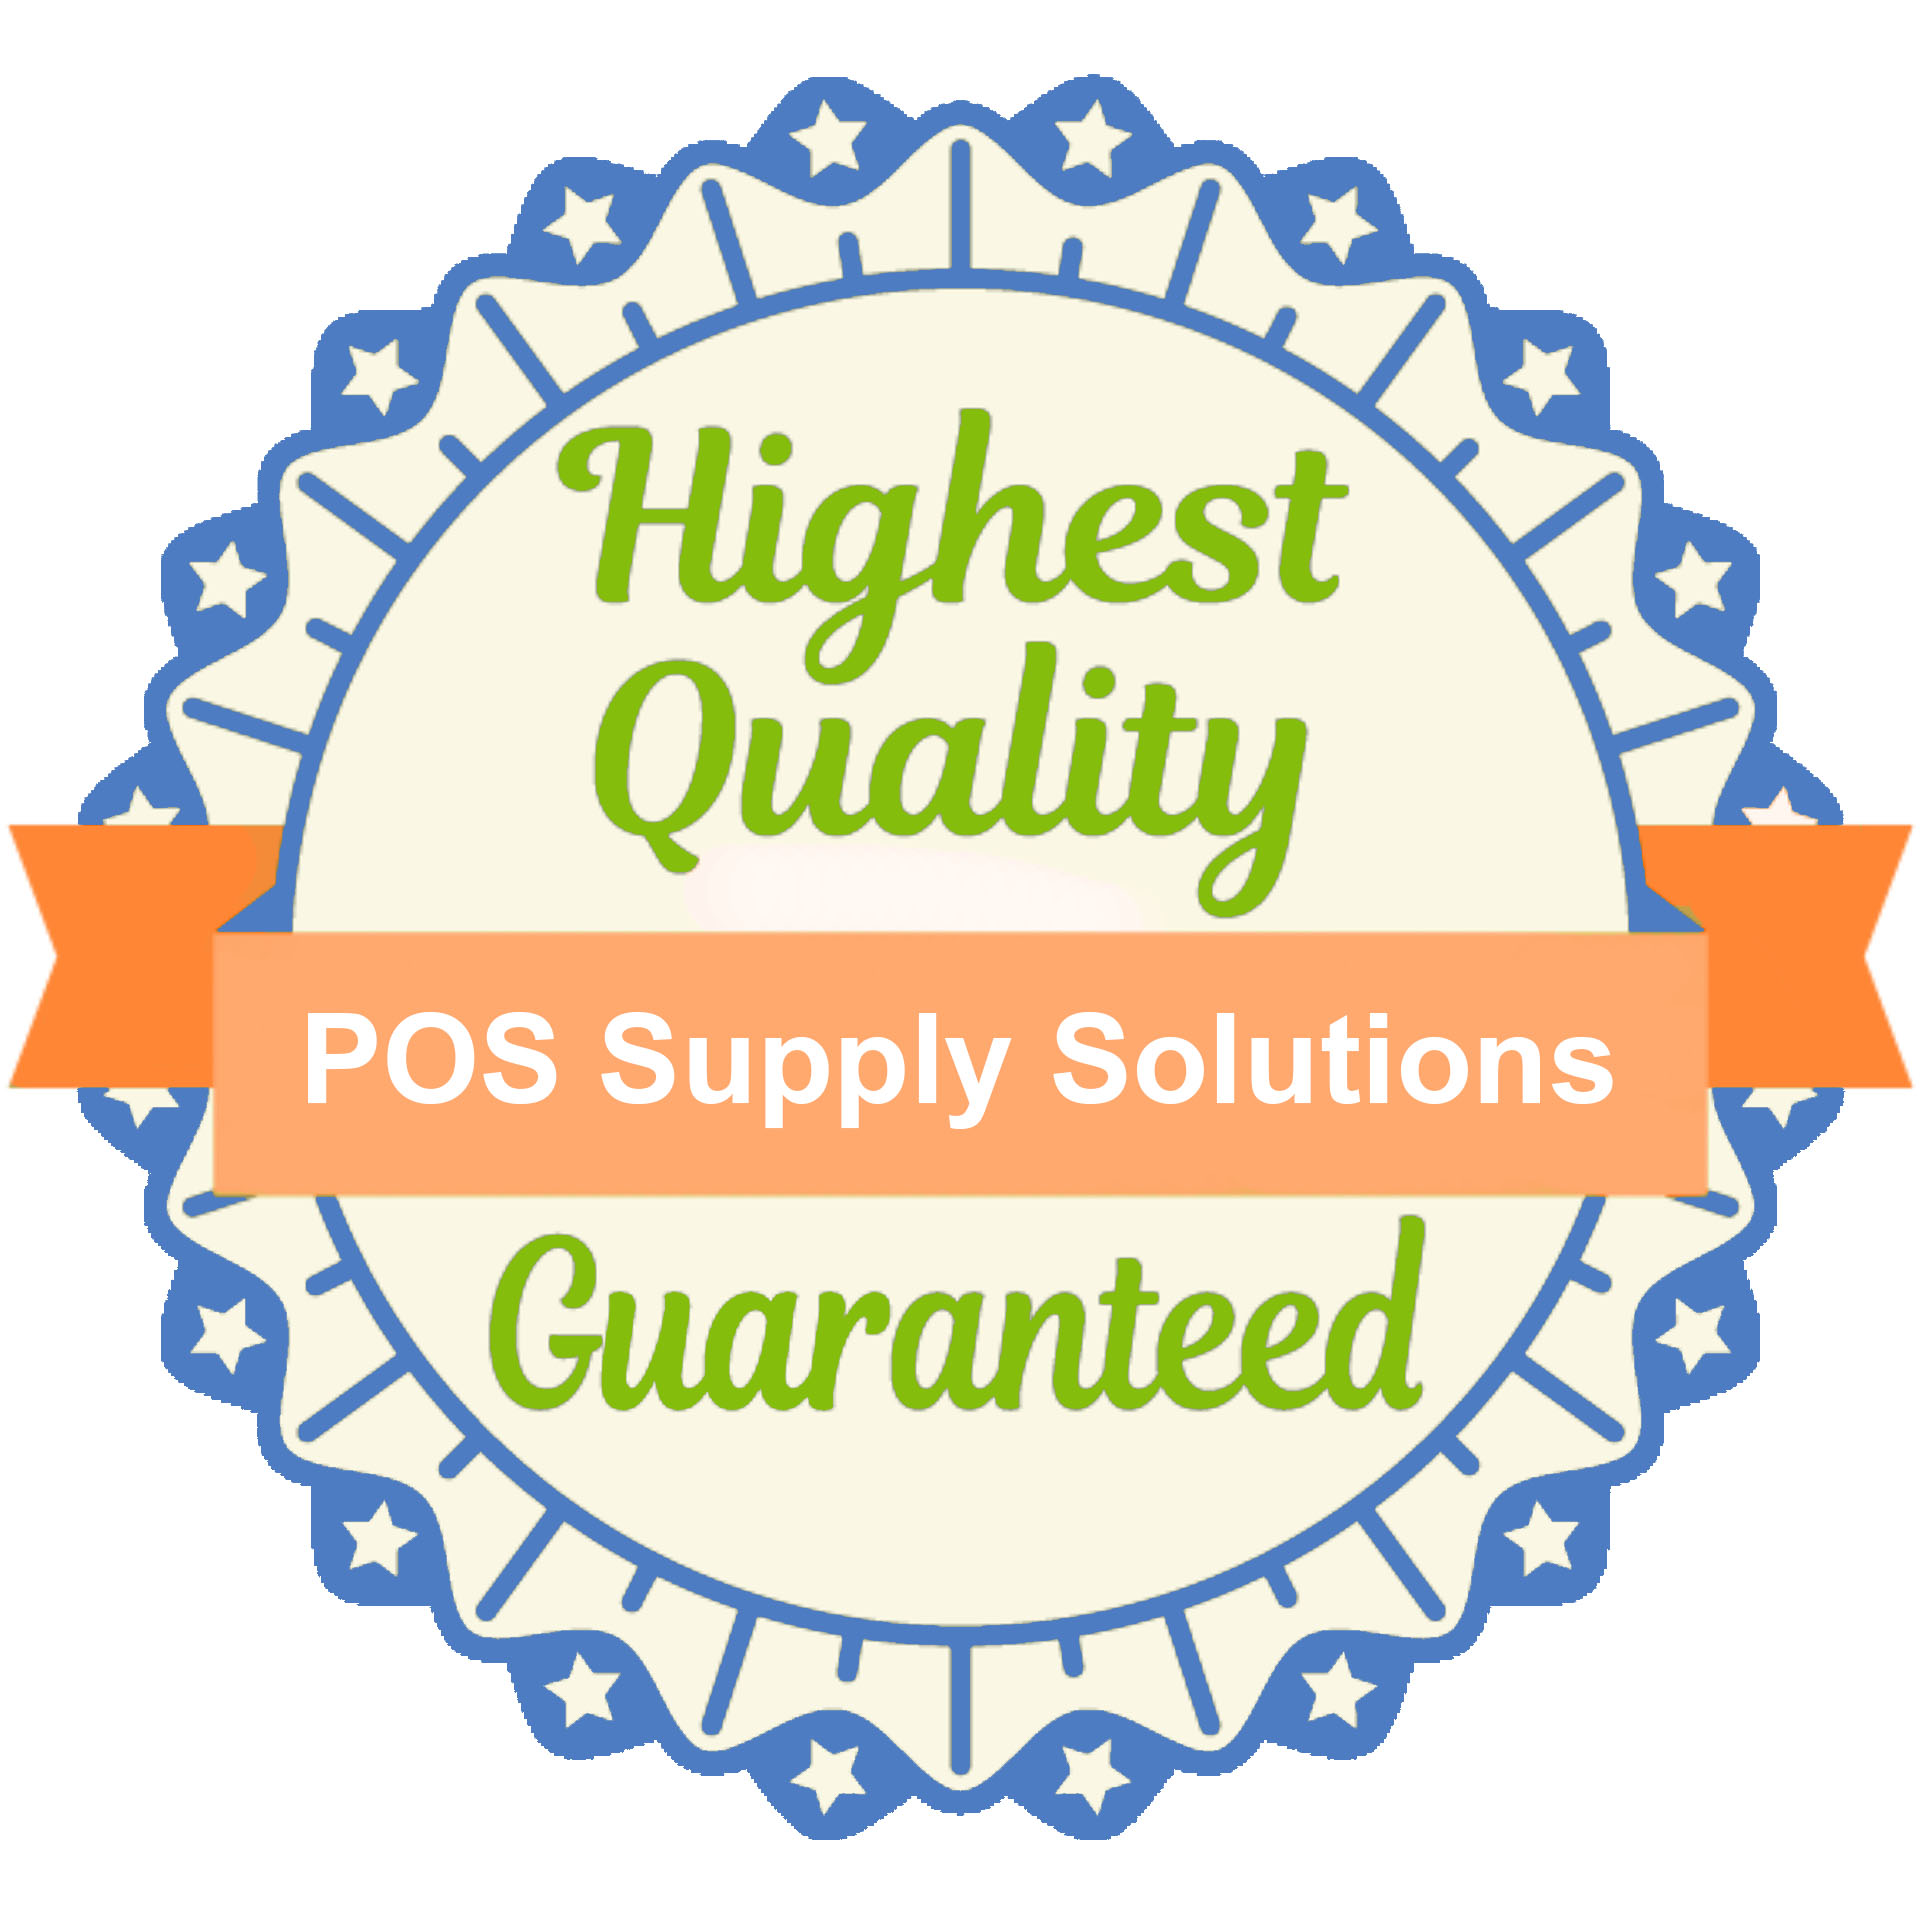 Product Quality Guarantee Badge